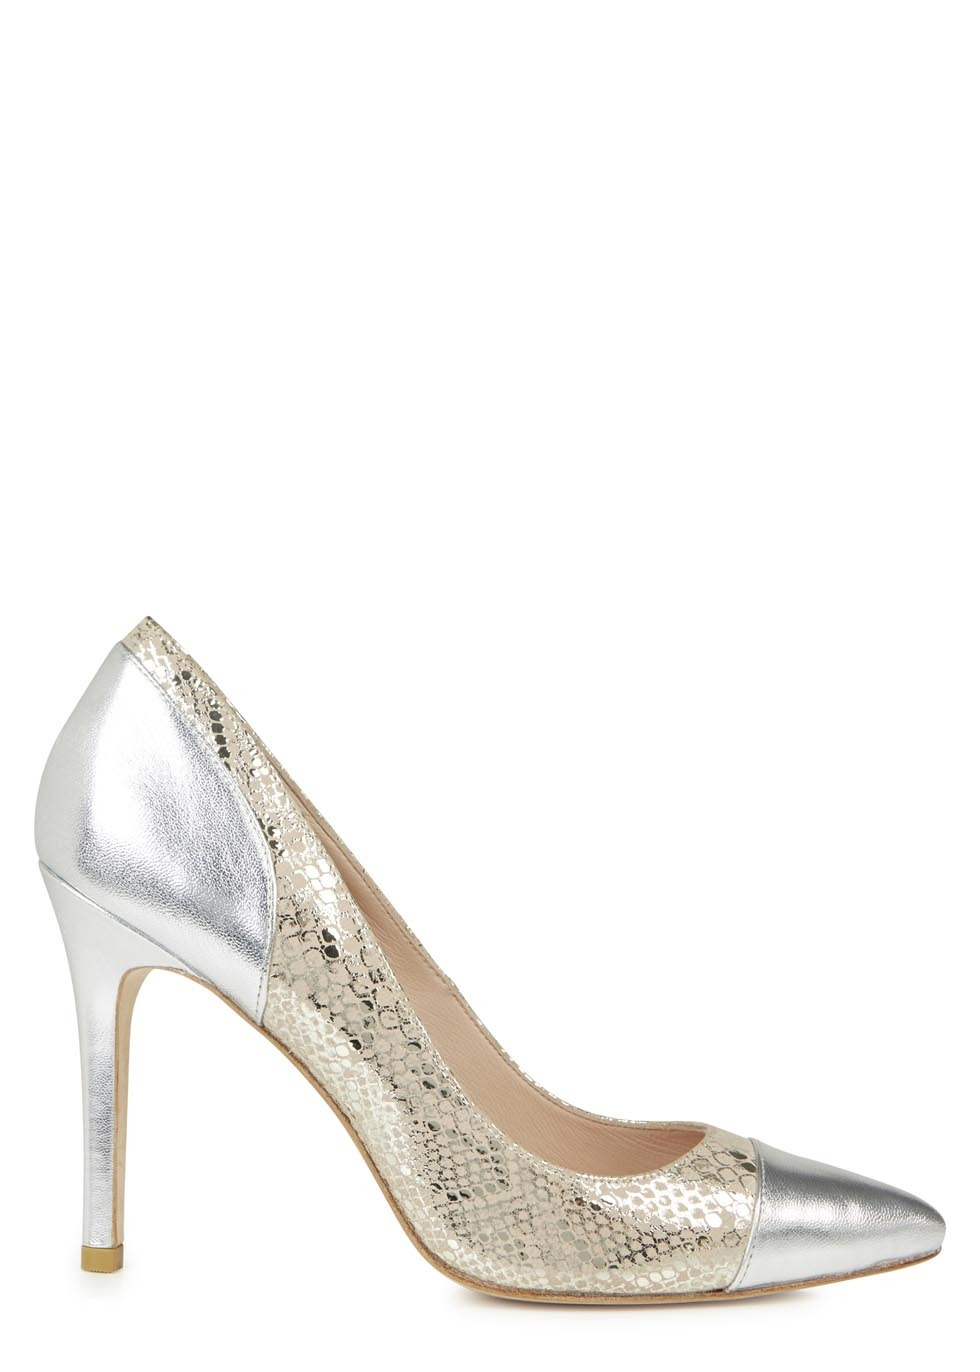 Silver And Nude Snake Effect Pumps - secondary colour: nude; predominant colour: silver; occasions: evening, occasion; material: leather; heel height: high; heel: stiletto; toe: pointed toe; style: courts; finish: metallic; pattern: animal print; trends: shimmery metallics; season: s/s 2014